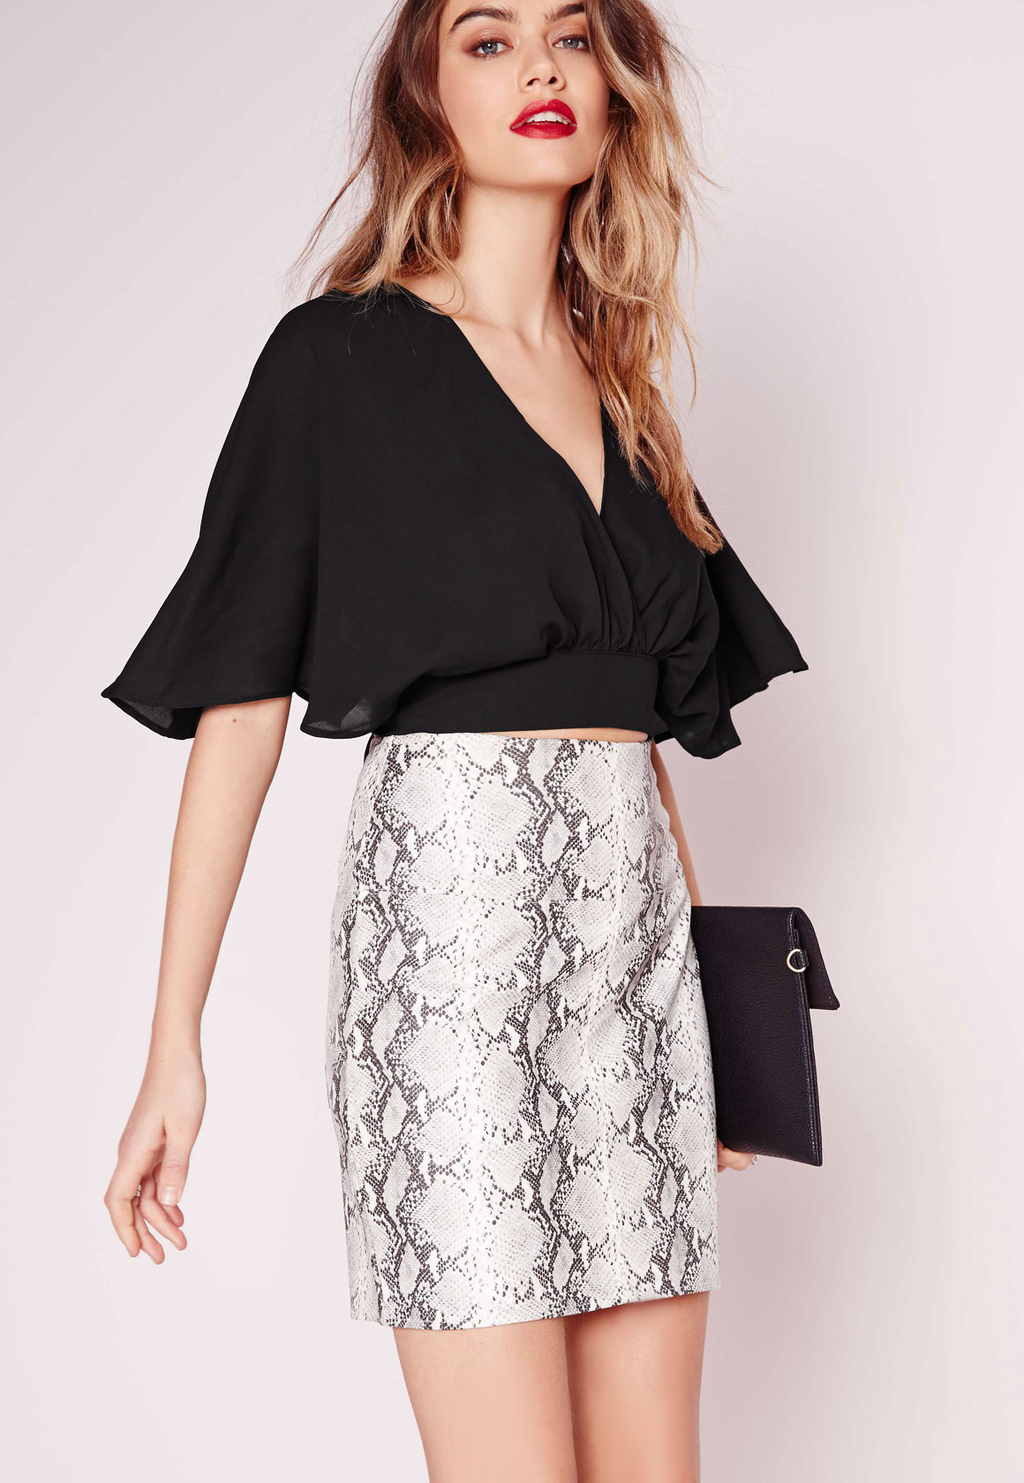 Floaty Tie Back Crop Top Black, Black - neckline: low v-neck; sleeve style: angel/waterfall; pattern: plain; length: cropped; predominant colour: black; occasions: evening; style: top; fibres: polyester/polyamide - stretch; fit: loose; sleeve length: half sleeve; pattern type: fabric; texture group: other - light to midweight; season: s/s 2016